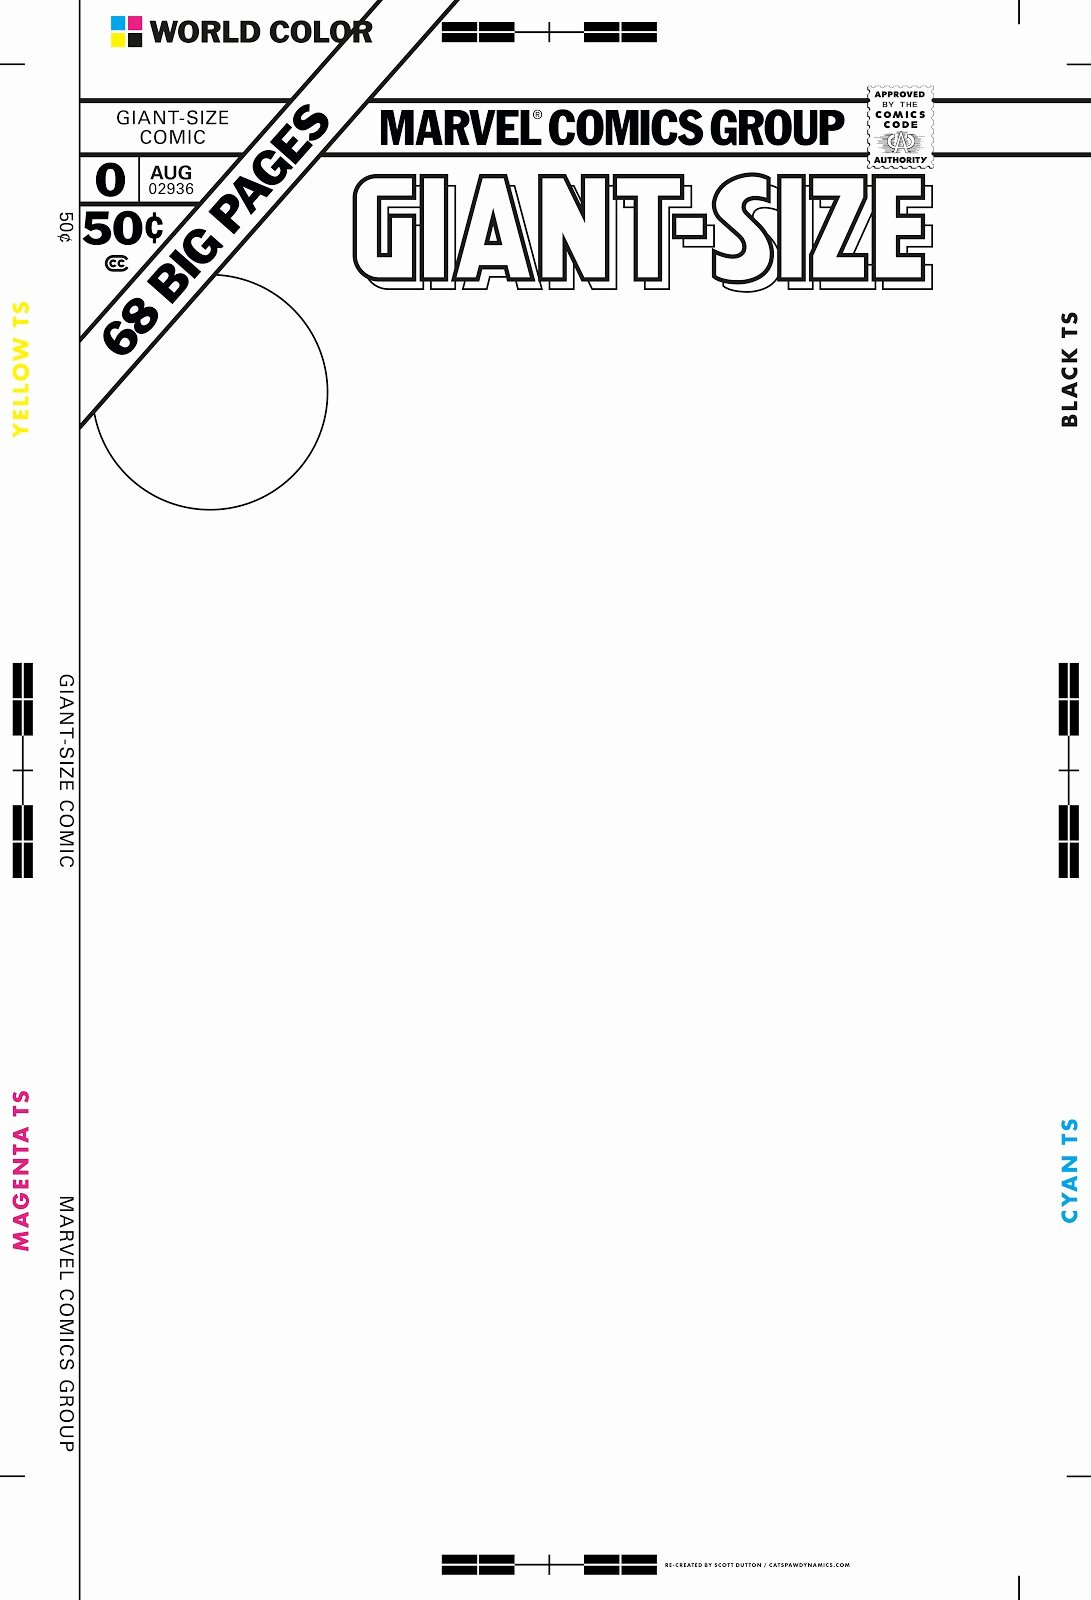 Blank Comic Book Cover Template Best Of Giant Size Marvel